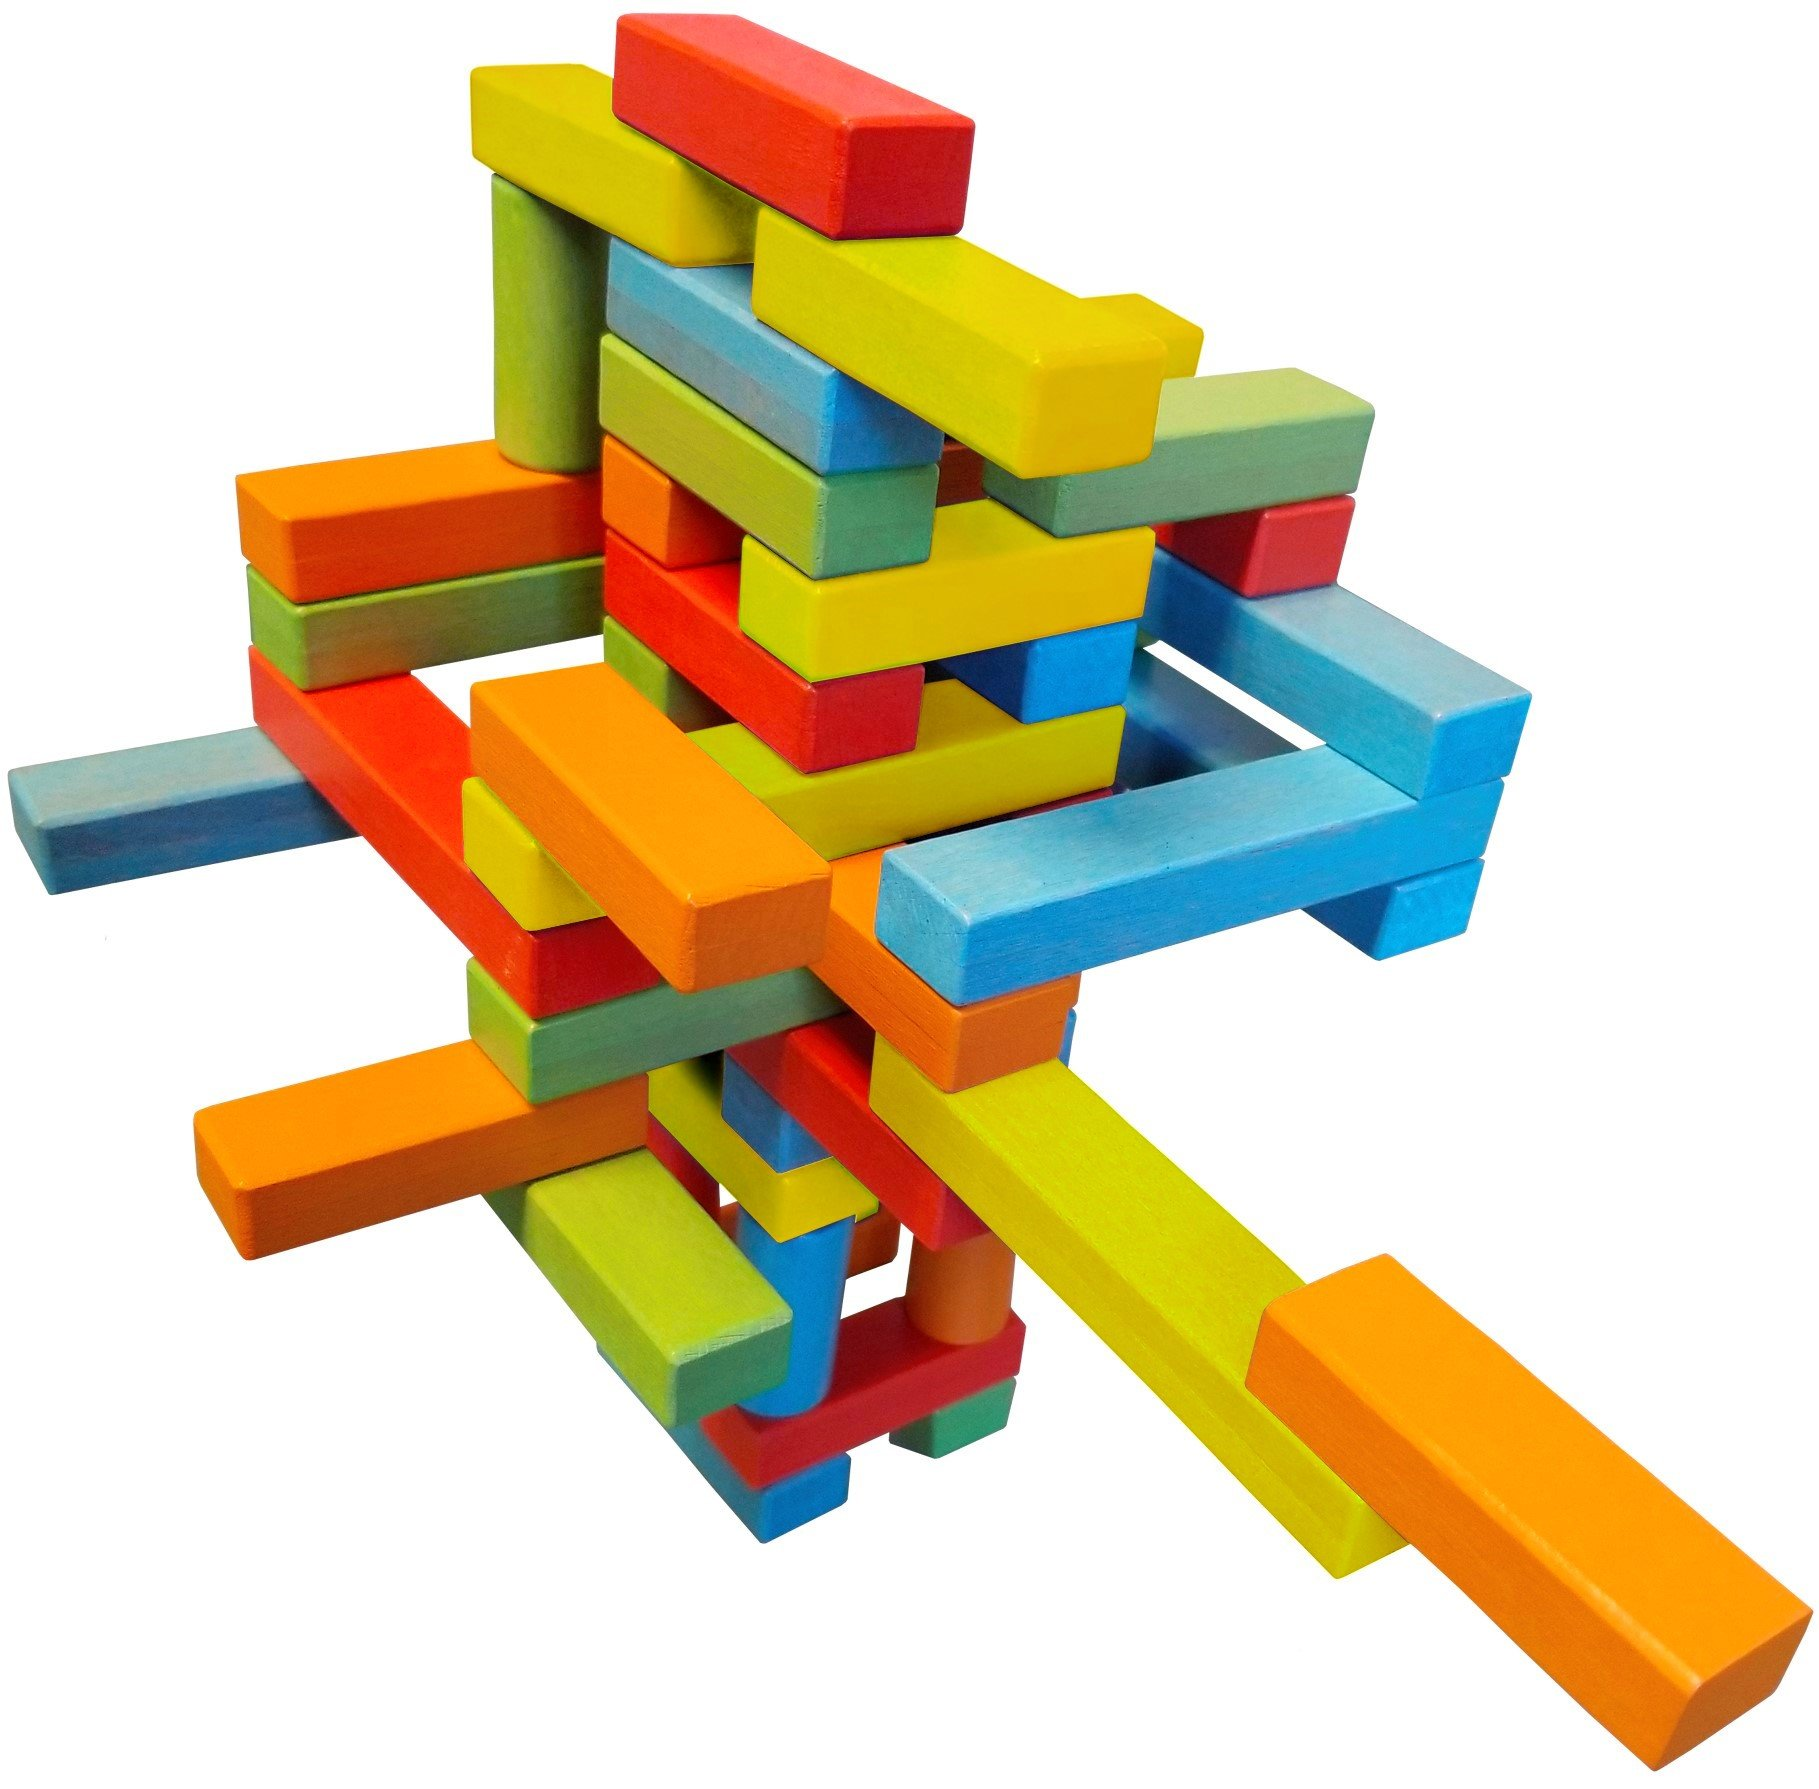 Wooden Bricks 45 Magnetic Building blocks, magnetic building set consisting of 25 short blocks, 15 long blocks and 5 risers, and a permanent canvas storage bag.